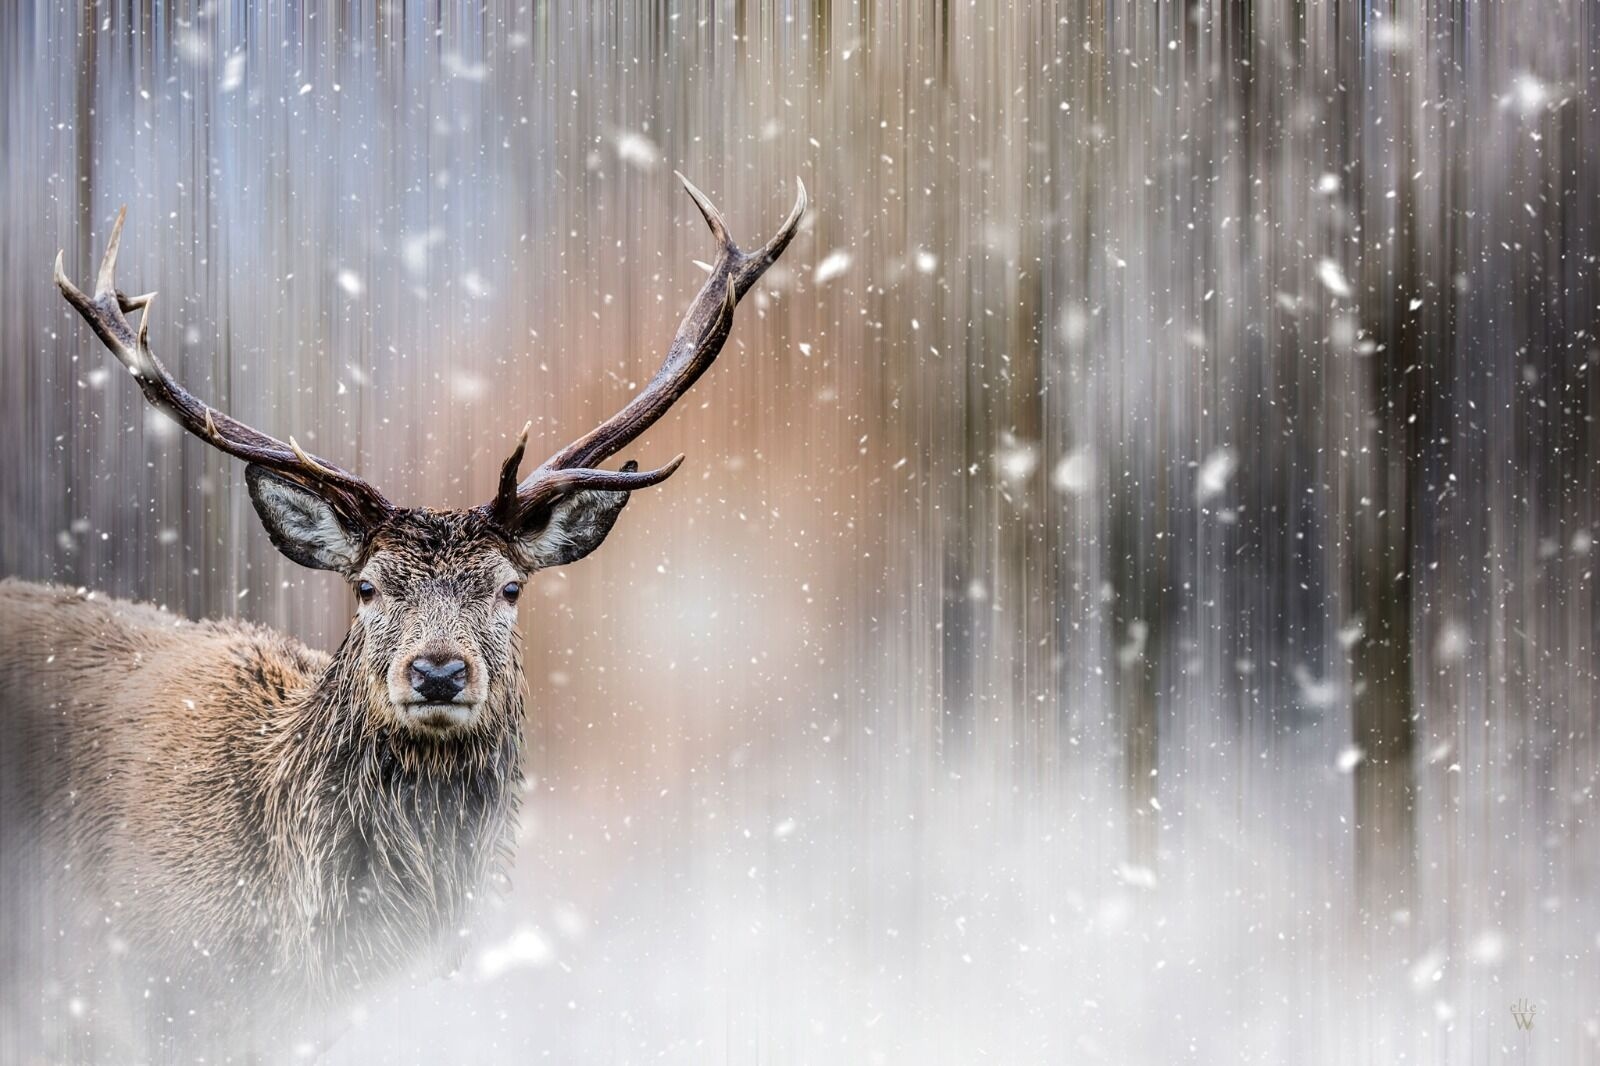 Stag in the snow - Mixed Art Effect